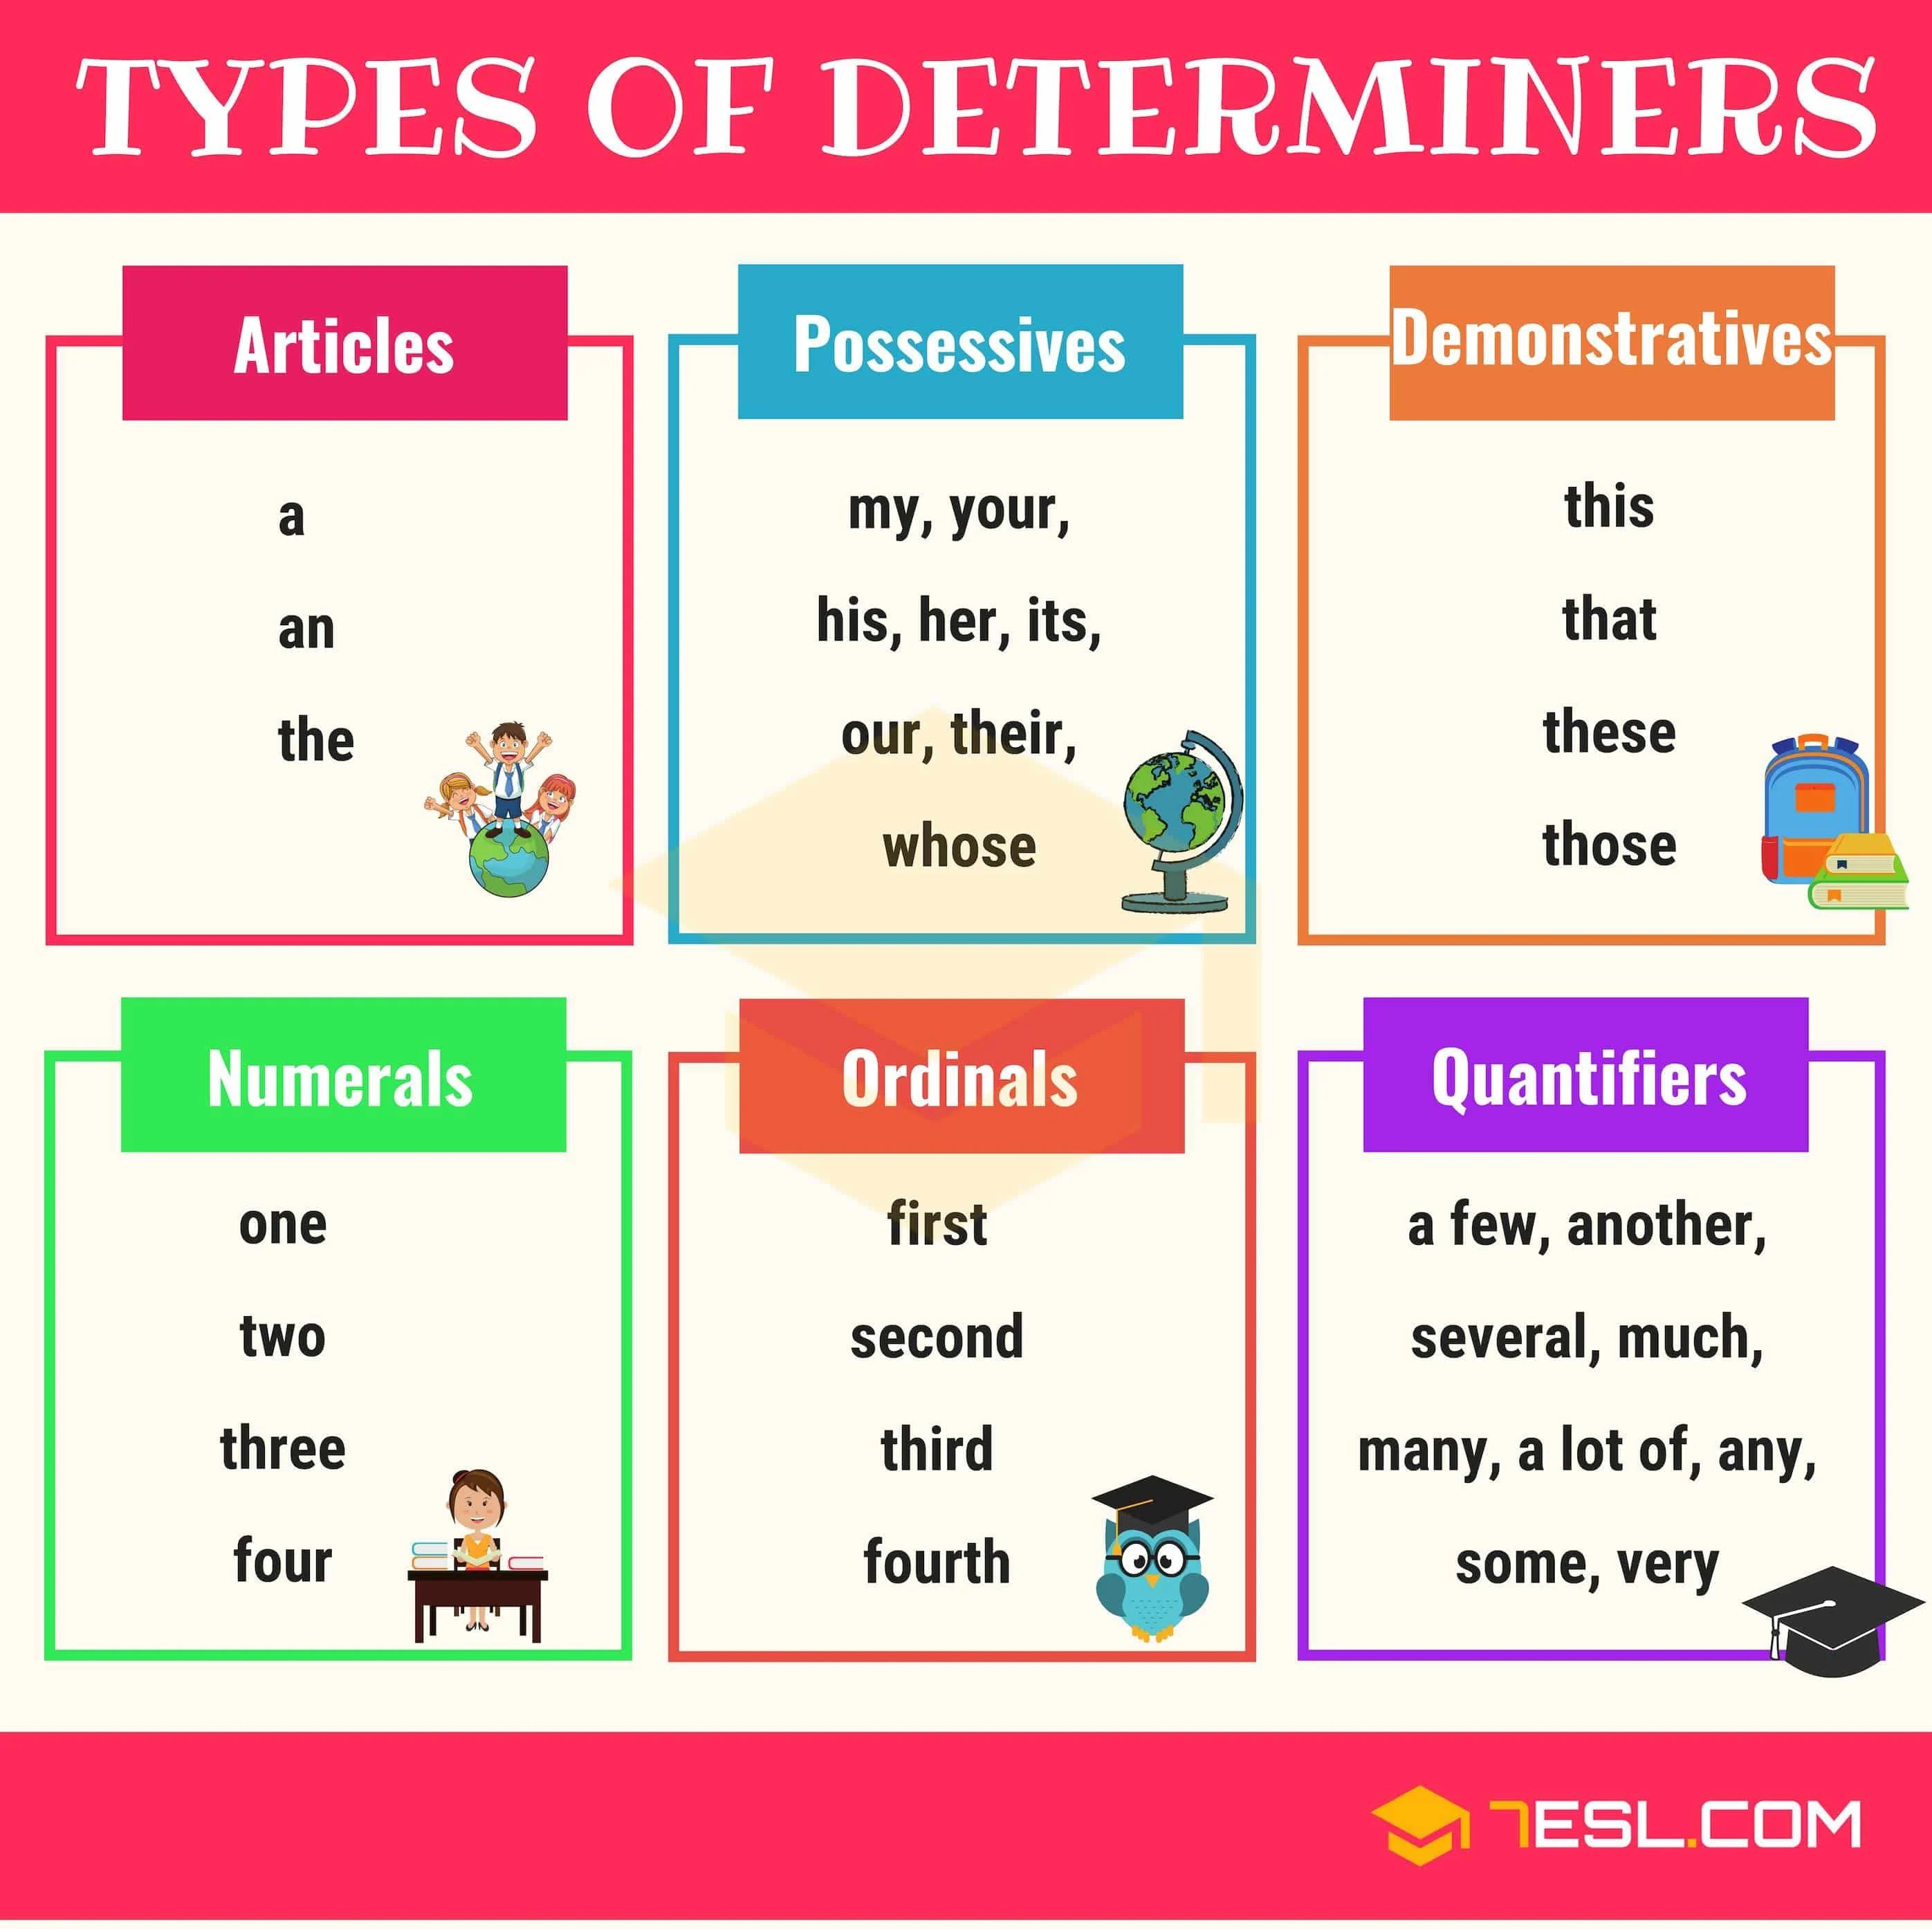 What Does Determiner Mean Determiners And Quantifiers